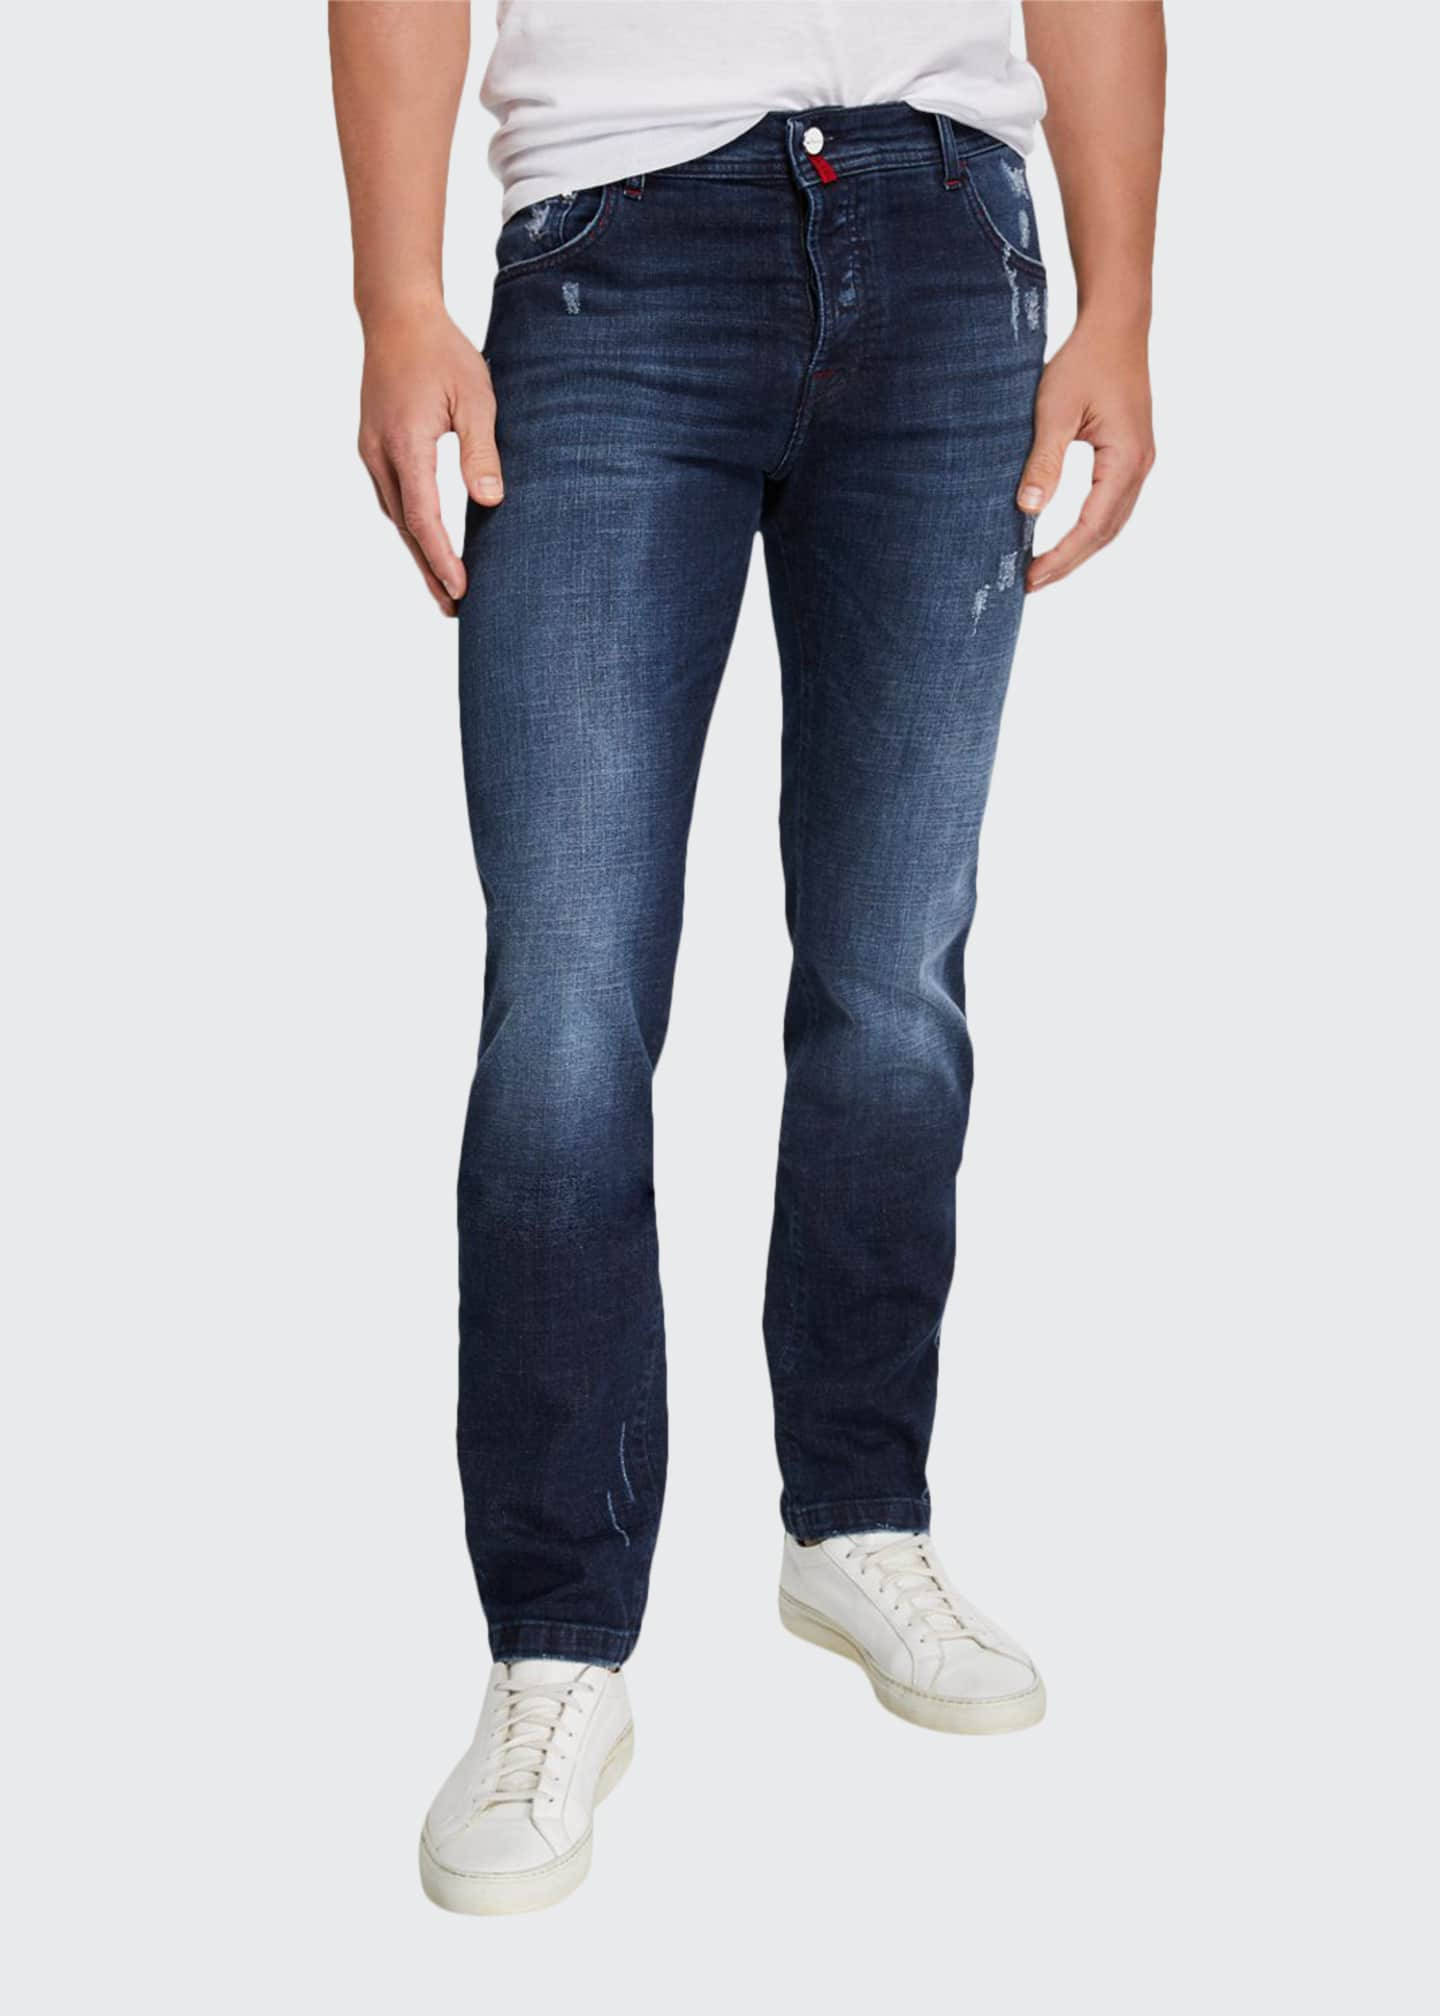 Image 1 of 3: Men's Distressed Overstitch Jeans